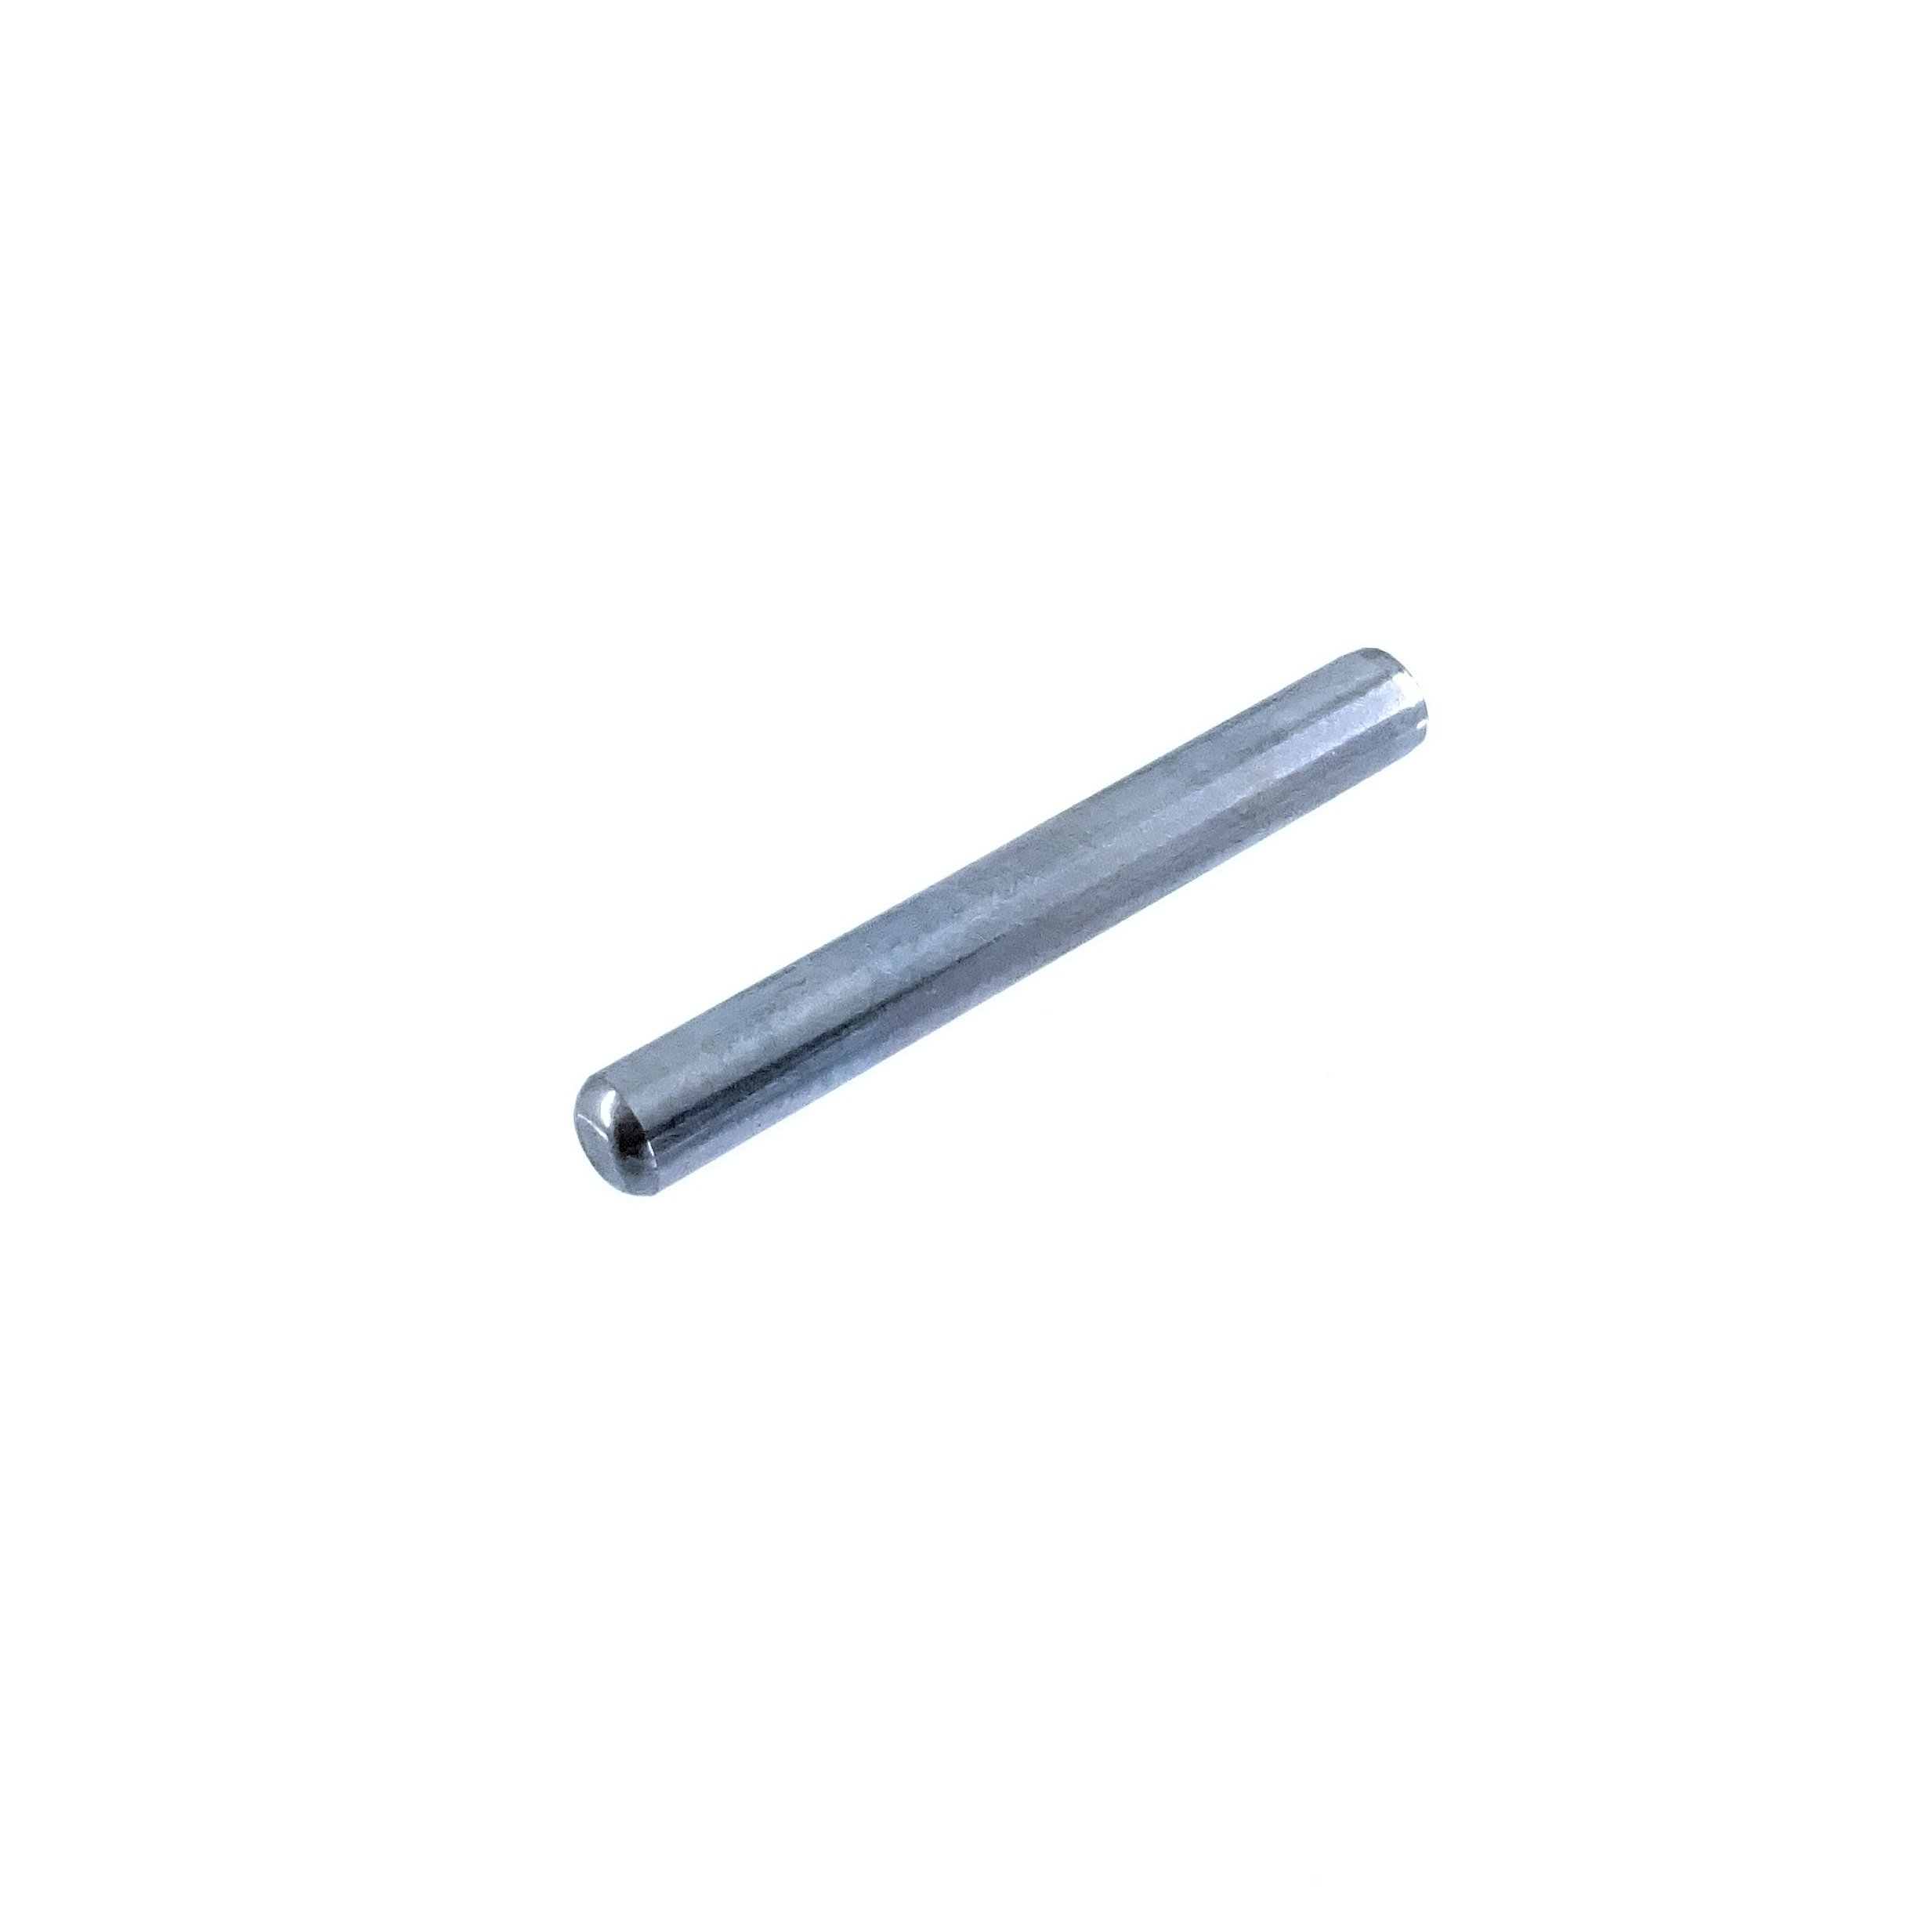 1/4 x 2'' Dowel Pins, Alloy Steel, Pack of 20